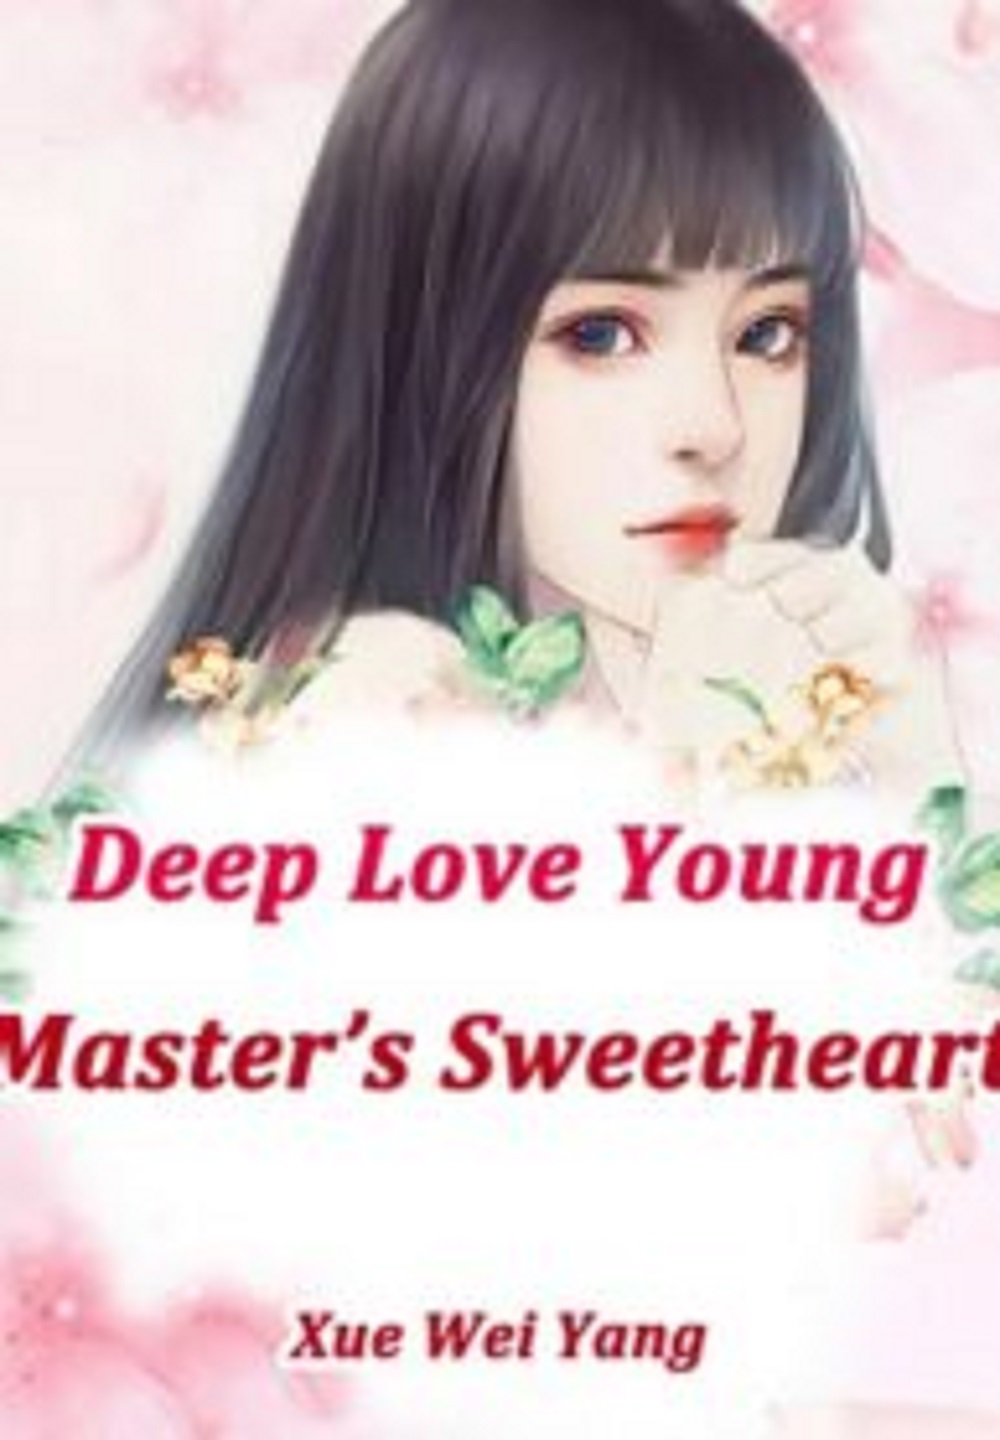 Deep Love: Young Master's Sweetheart Novel Chapter 17 To 18 PDF